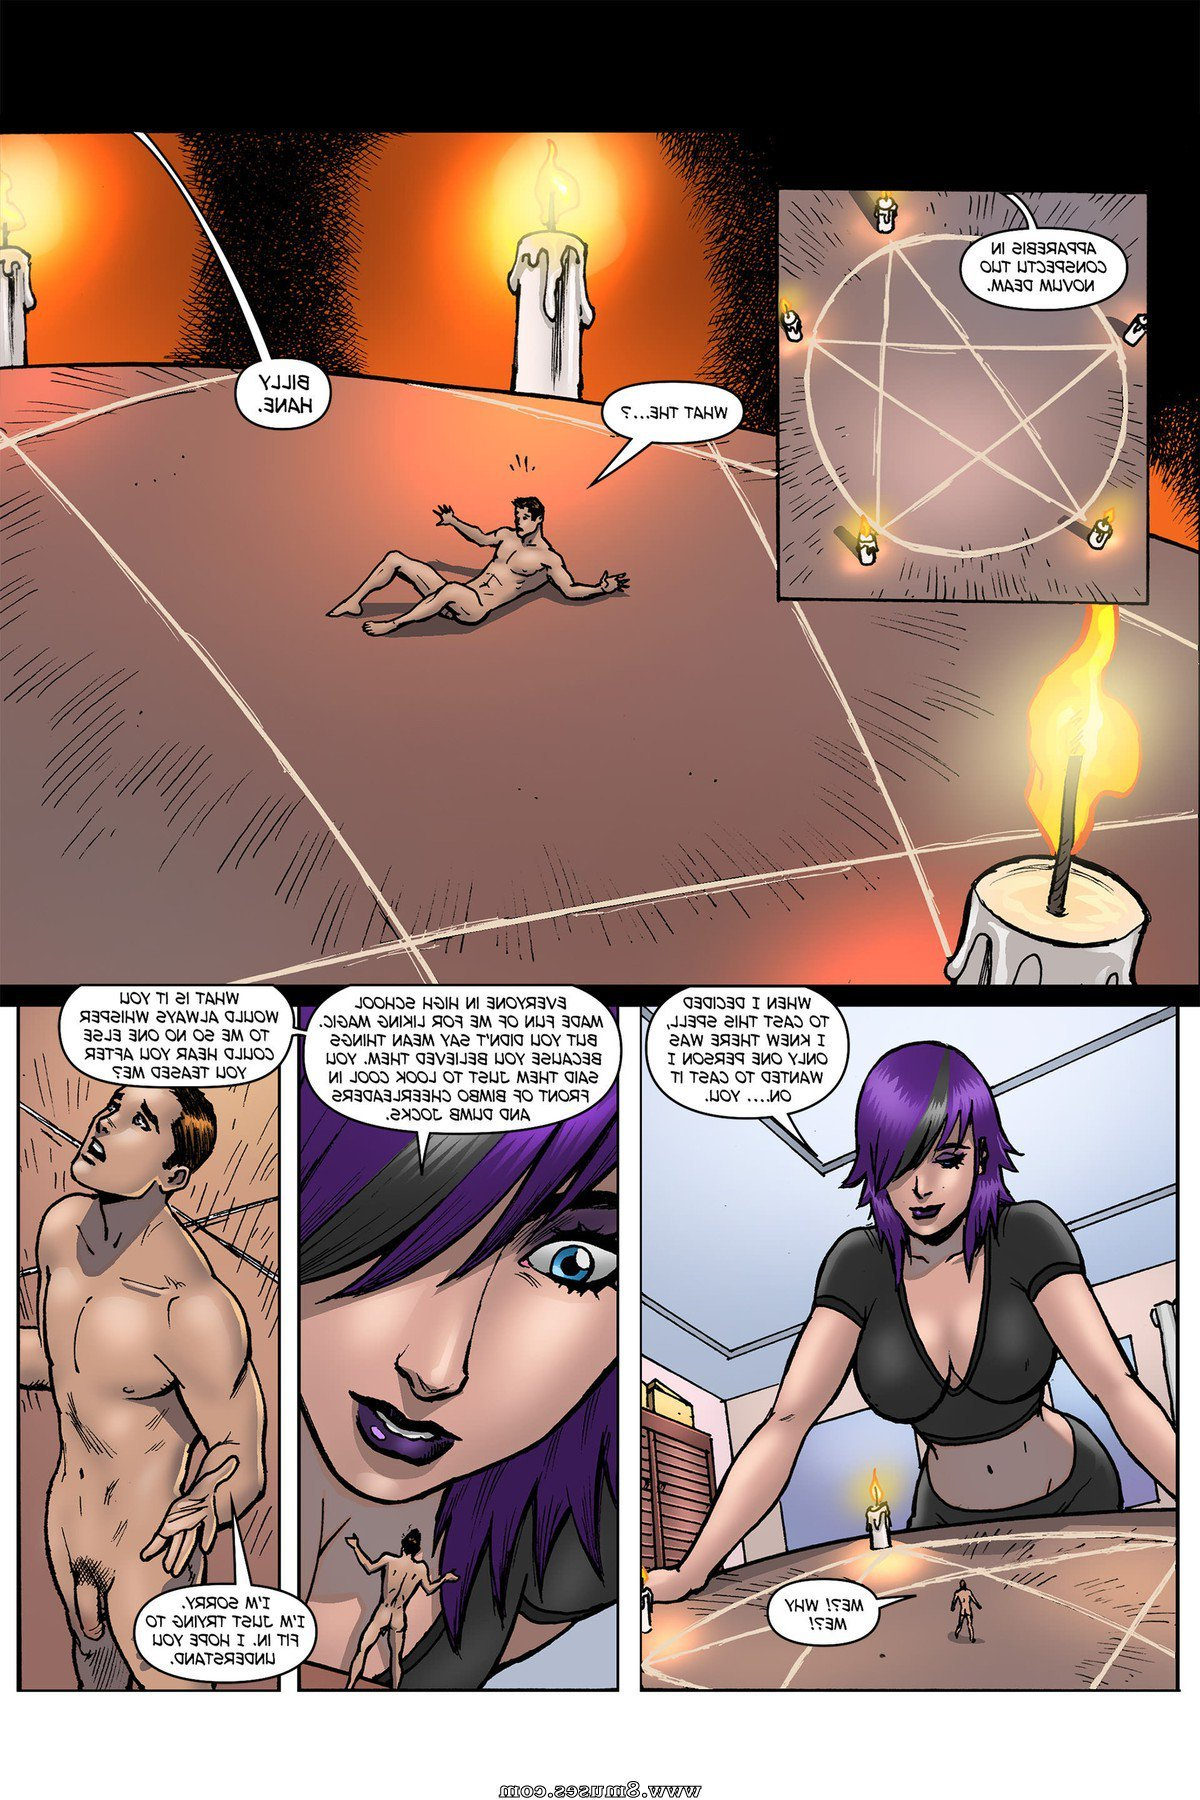 Giantess-Fan-Comics/Fitting-In/Issue-1 Fitting_In_-_Issue_1_3.jpg